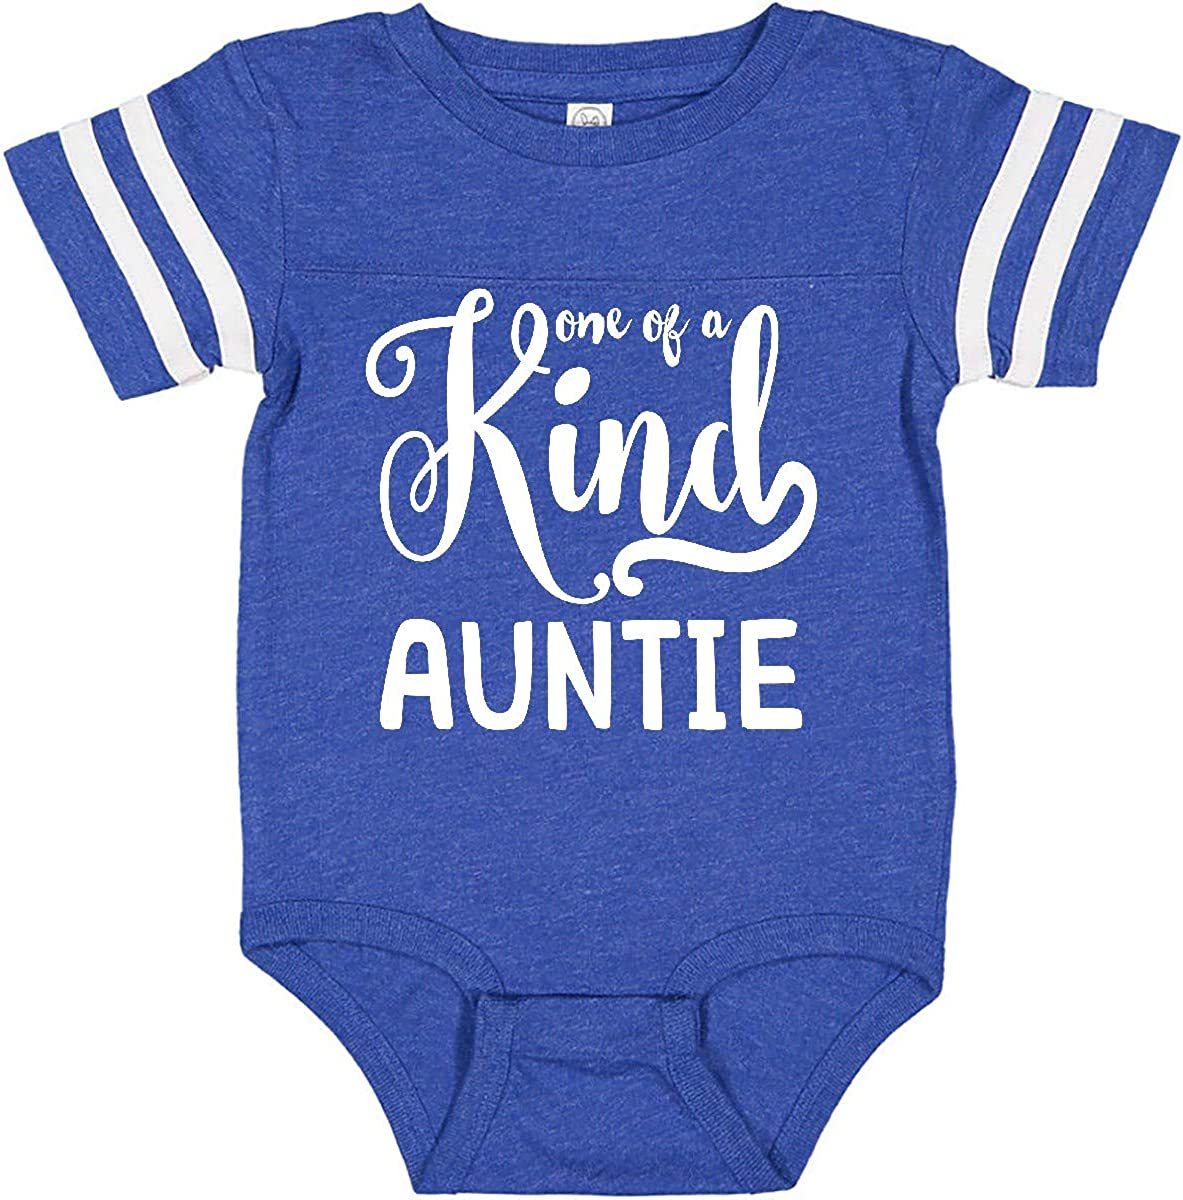 inktastic Gift for Aunts 1 of a Kind Auntie Infant Creeper White